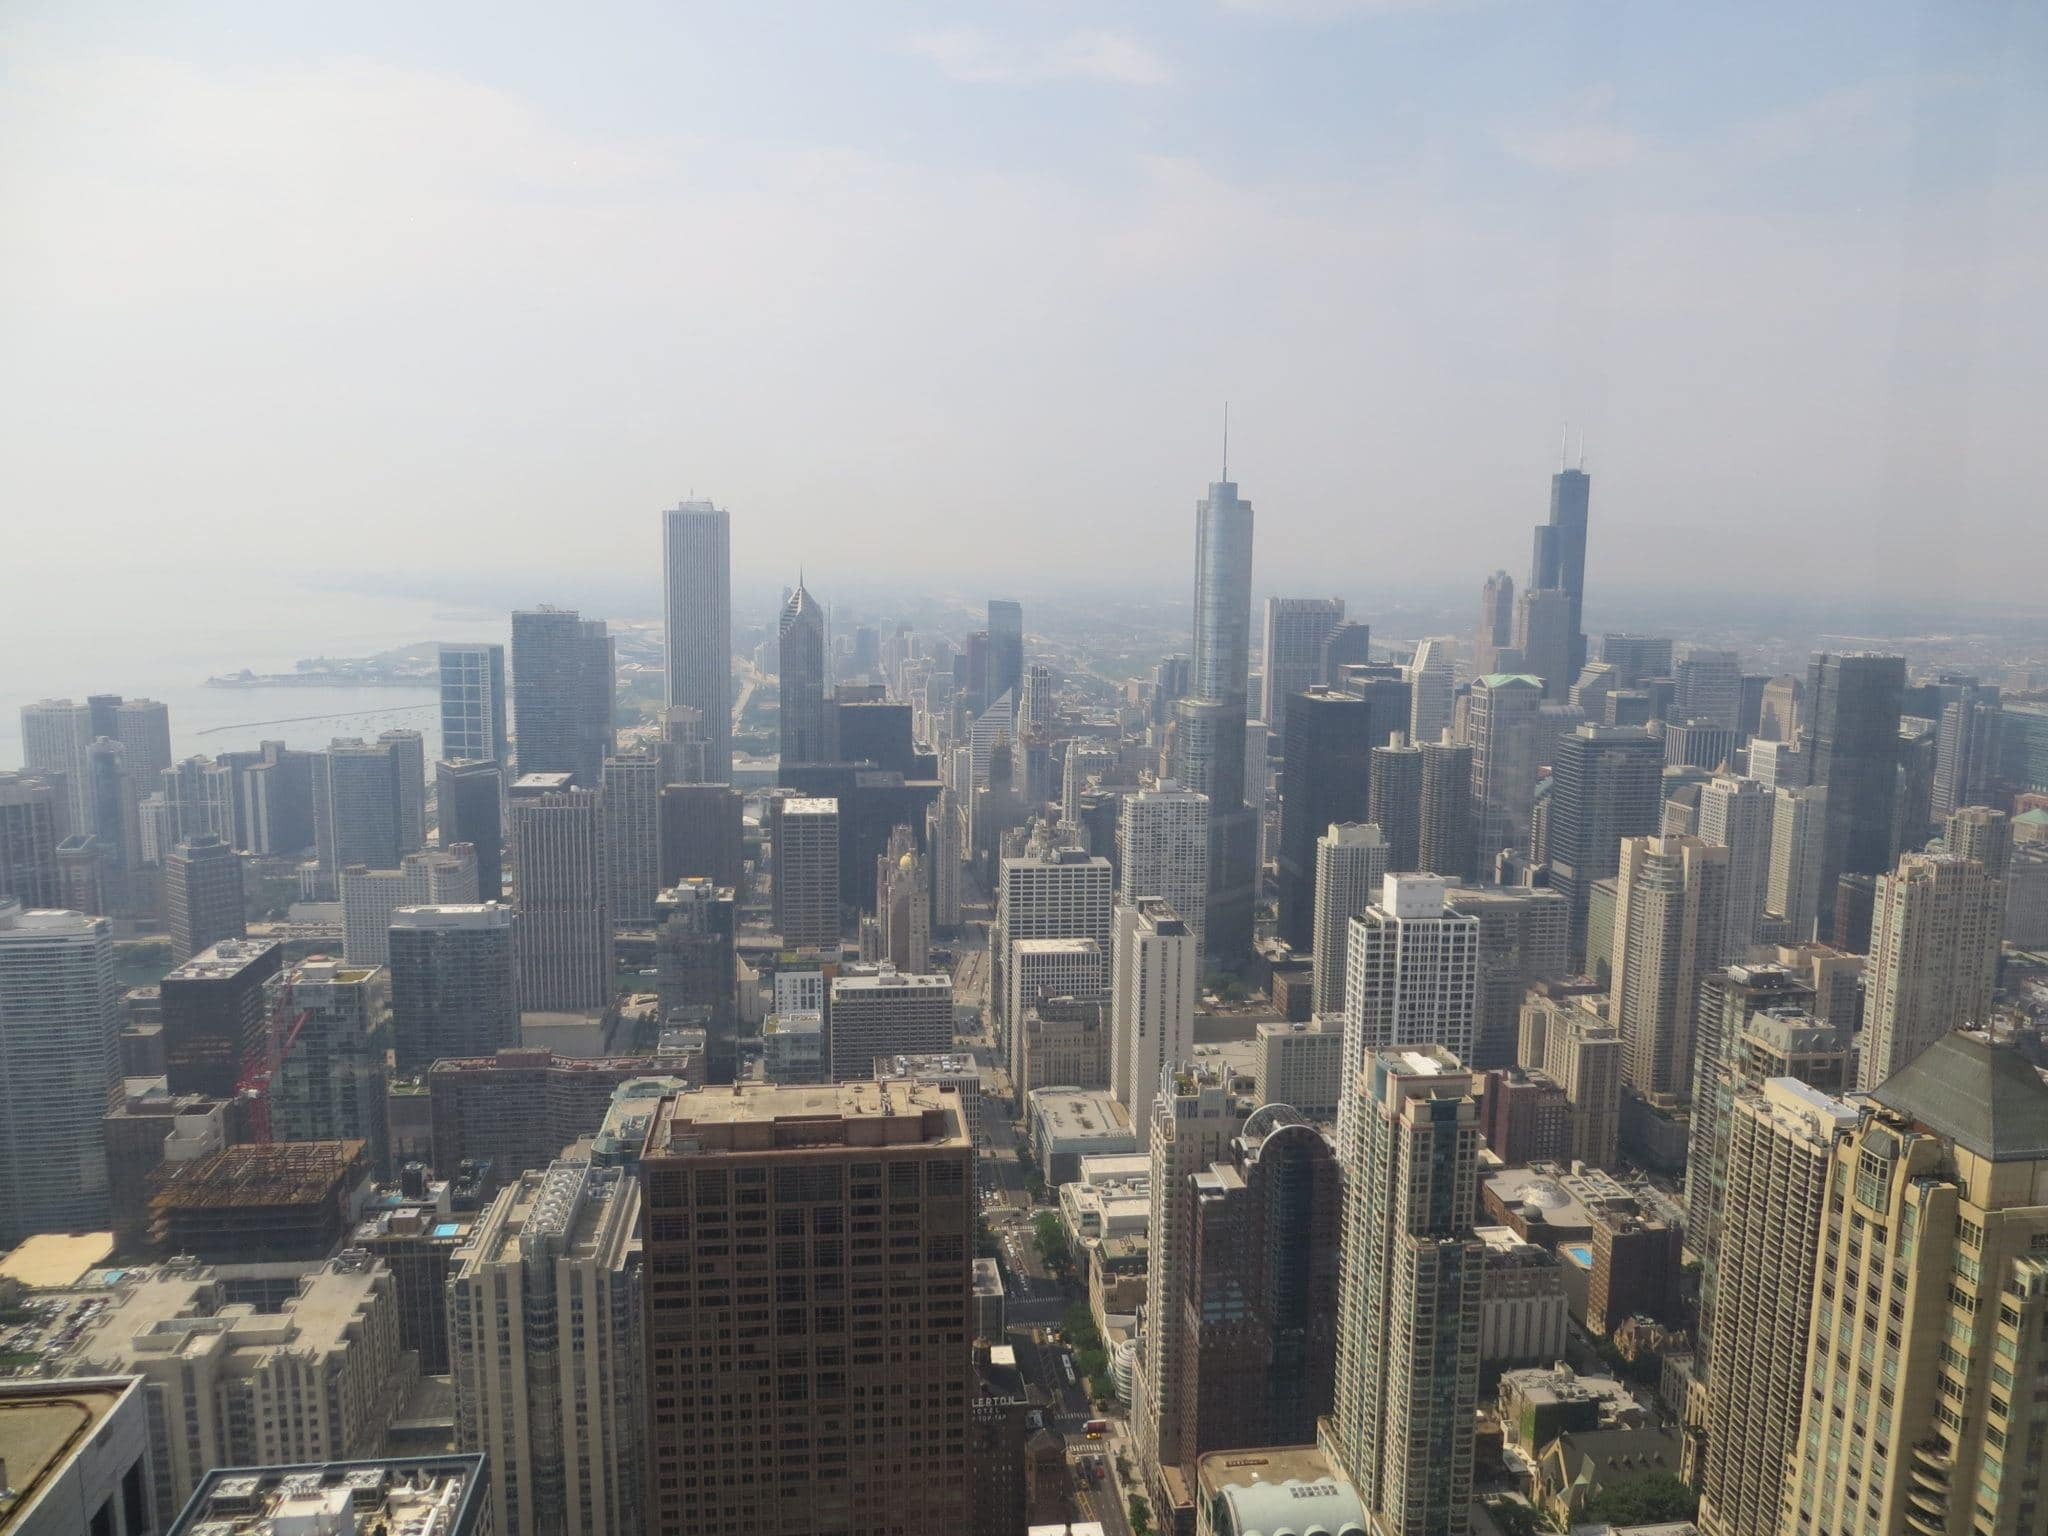 Chicago skyline from John Hancock Observatory